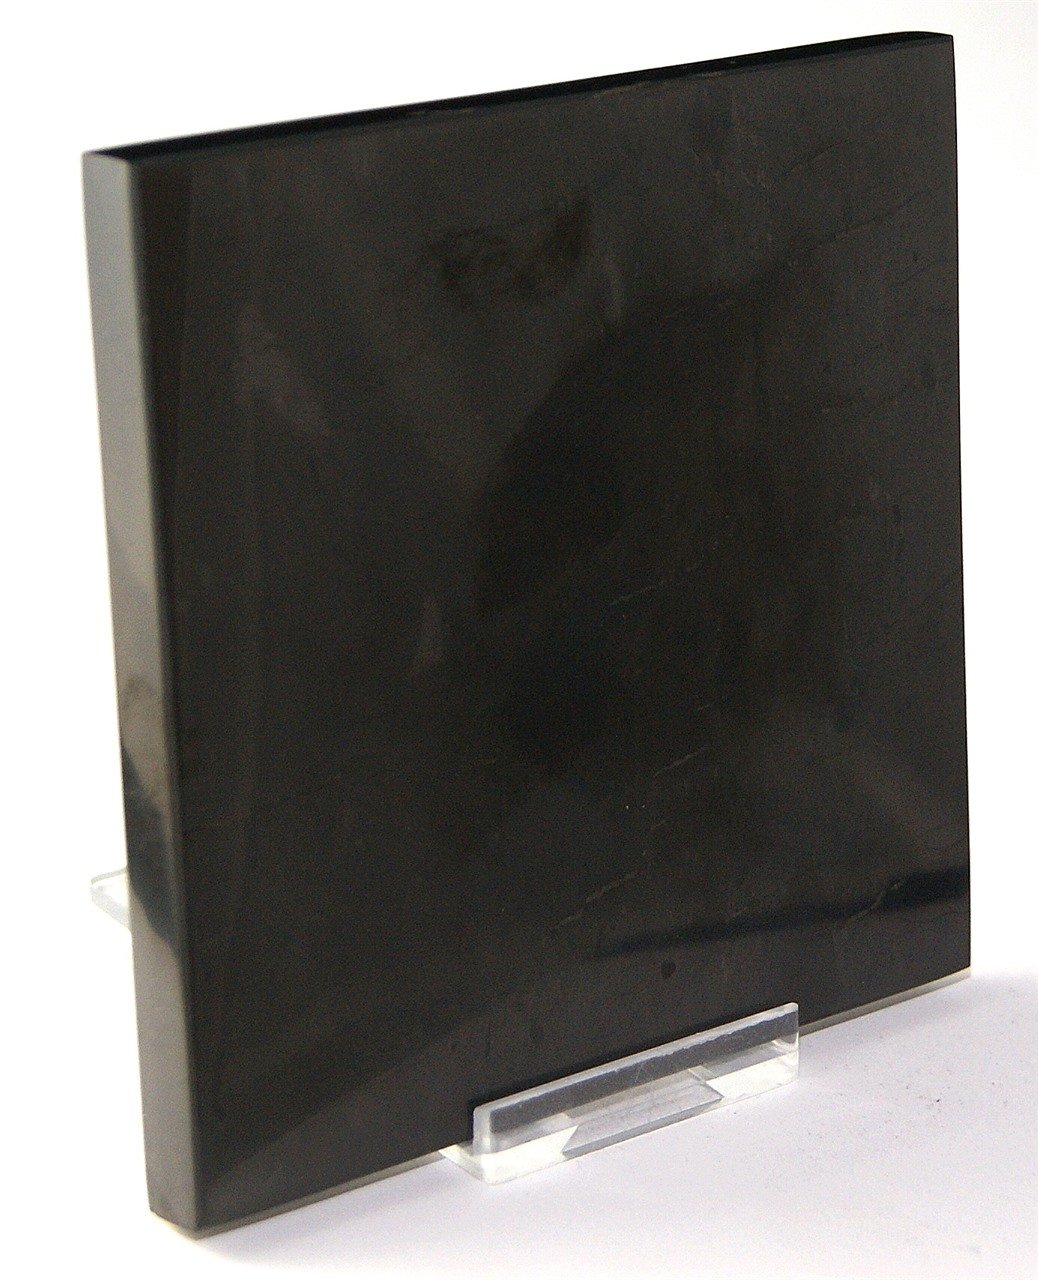 Shungite Shungit 100mm Electromagnetic Protection Plate Coaster Tile - 2 Supplied